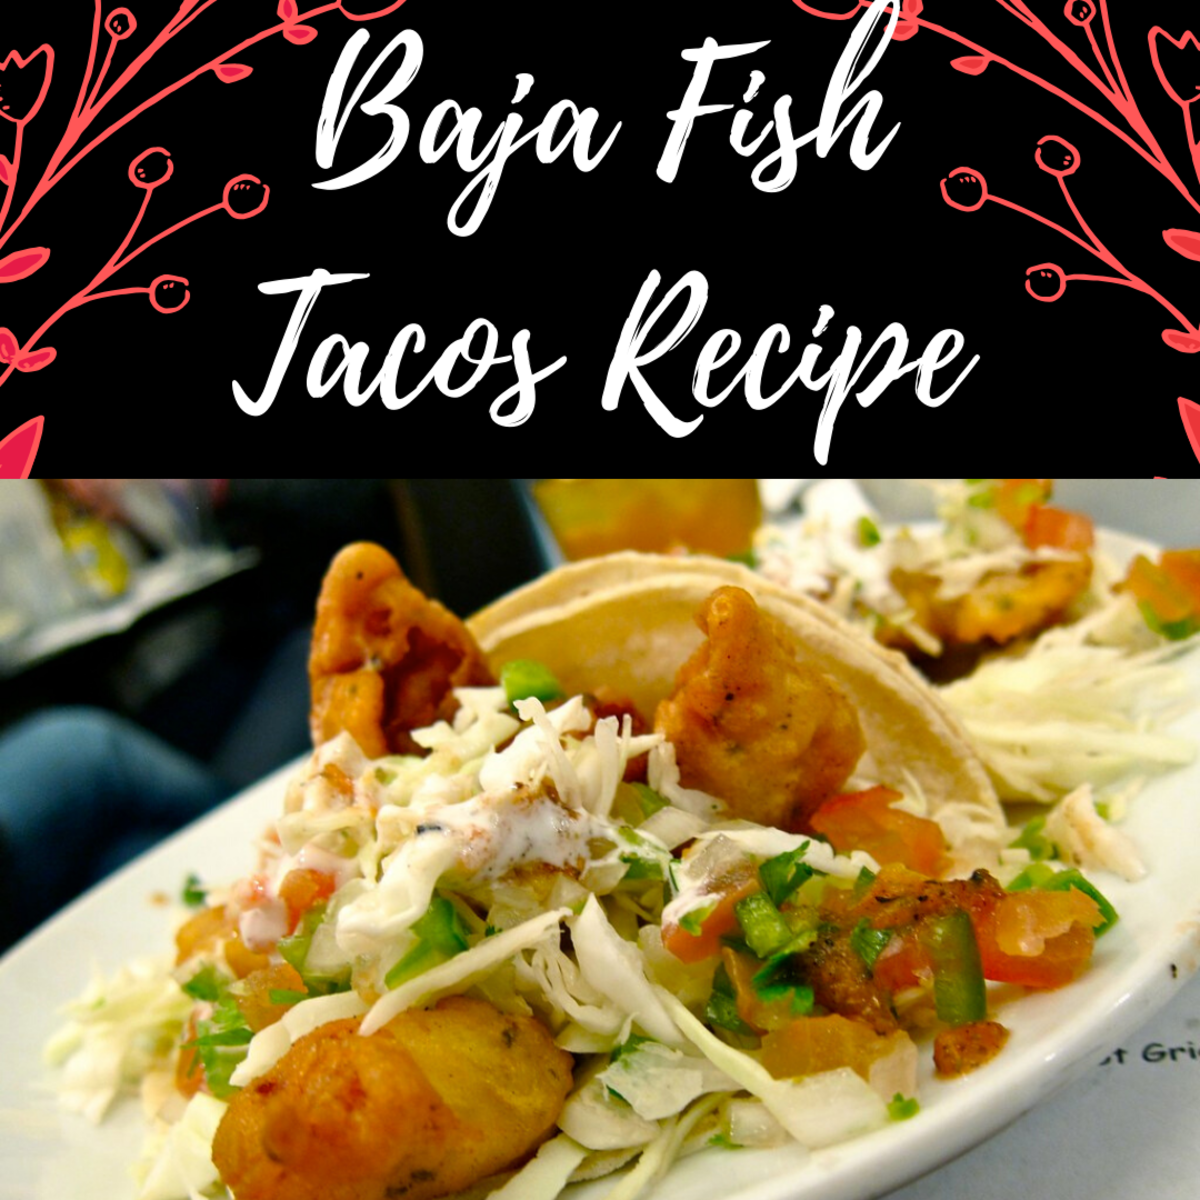 These Baja fish tacos are perfect for the whole family.